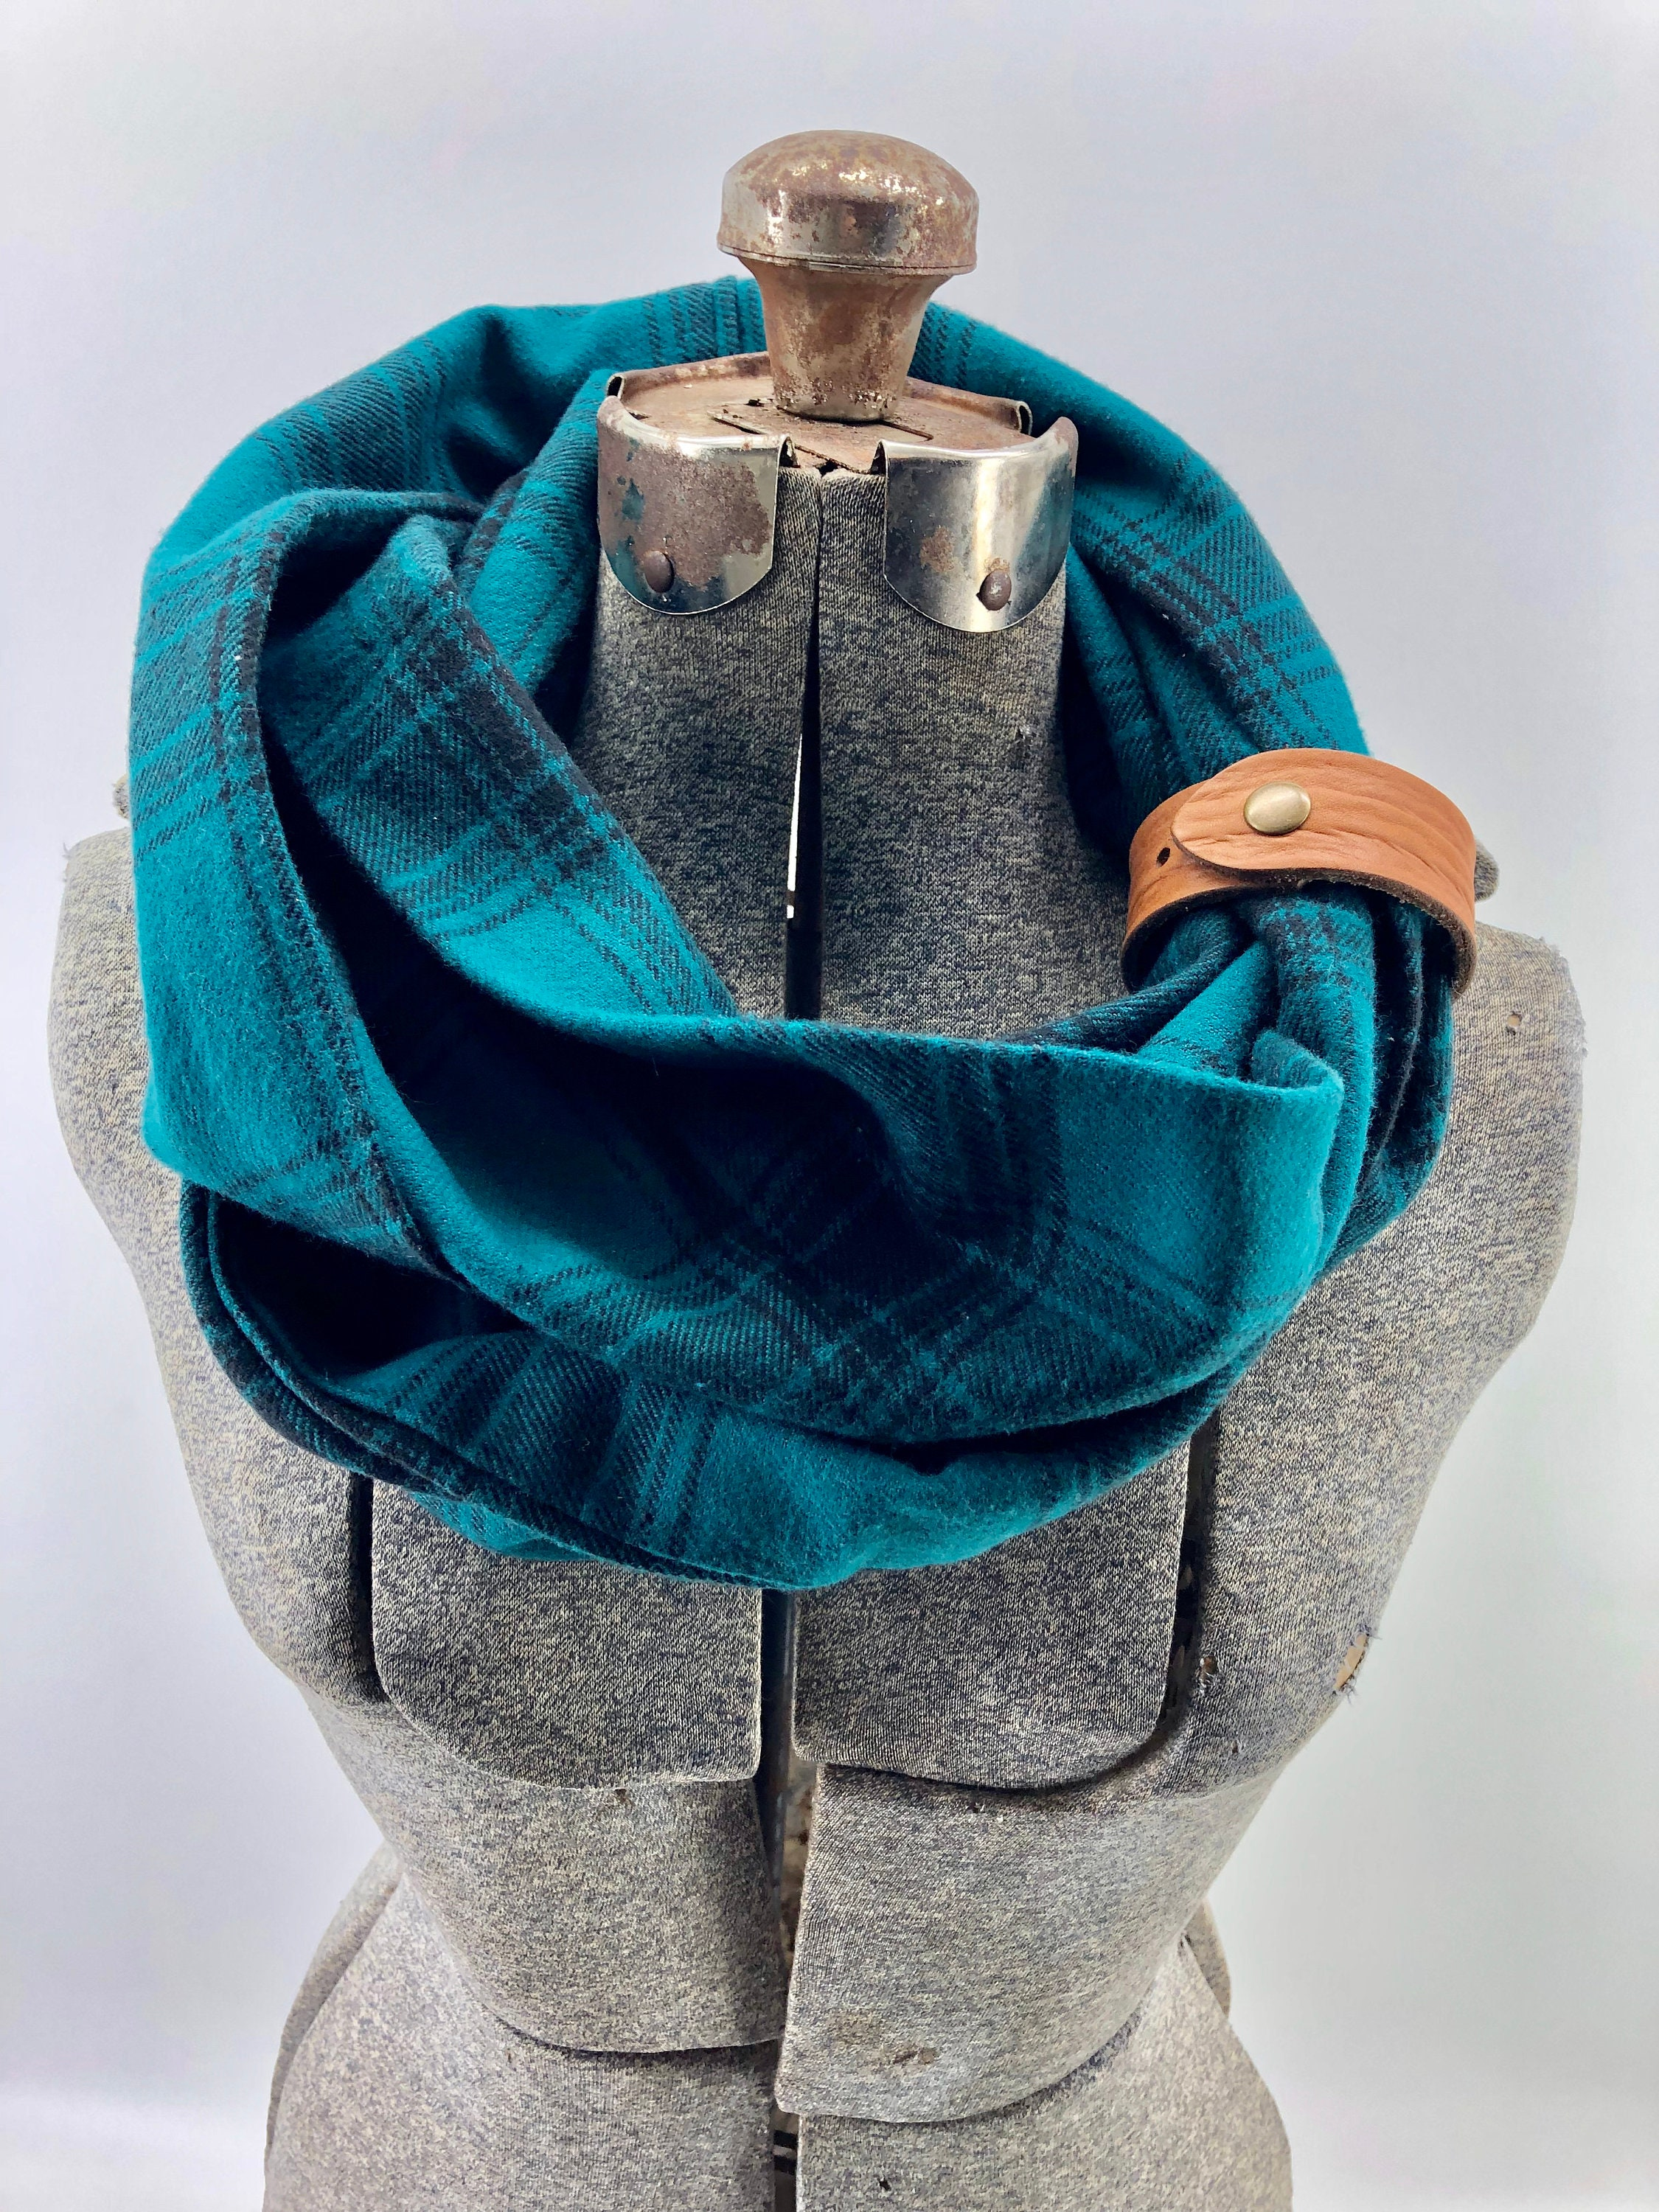 fc27b3285d8bd Teal plaid flannel eternity scarf with a brown leather cuff - soft, trendy